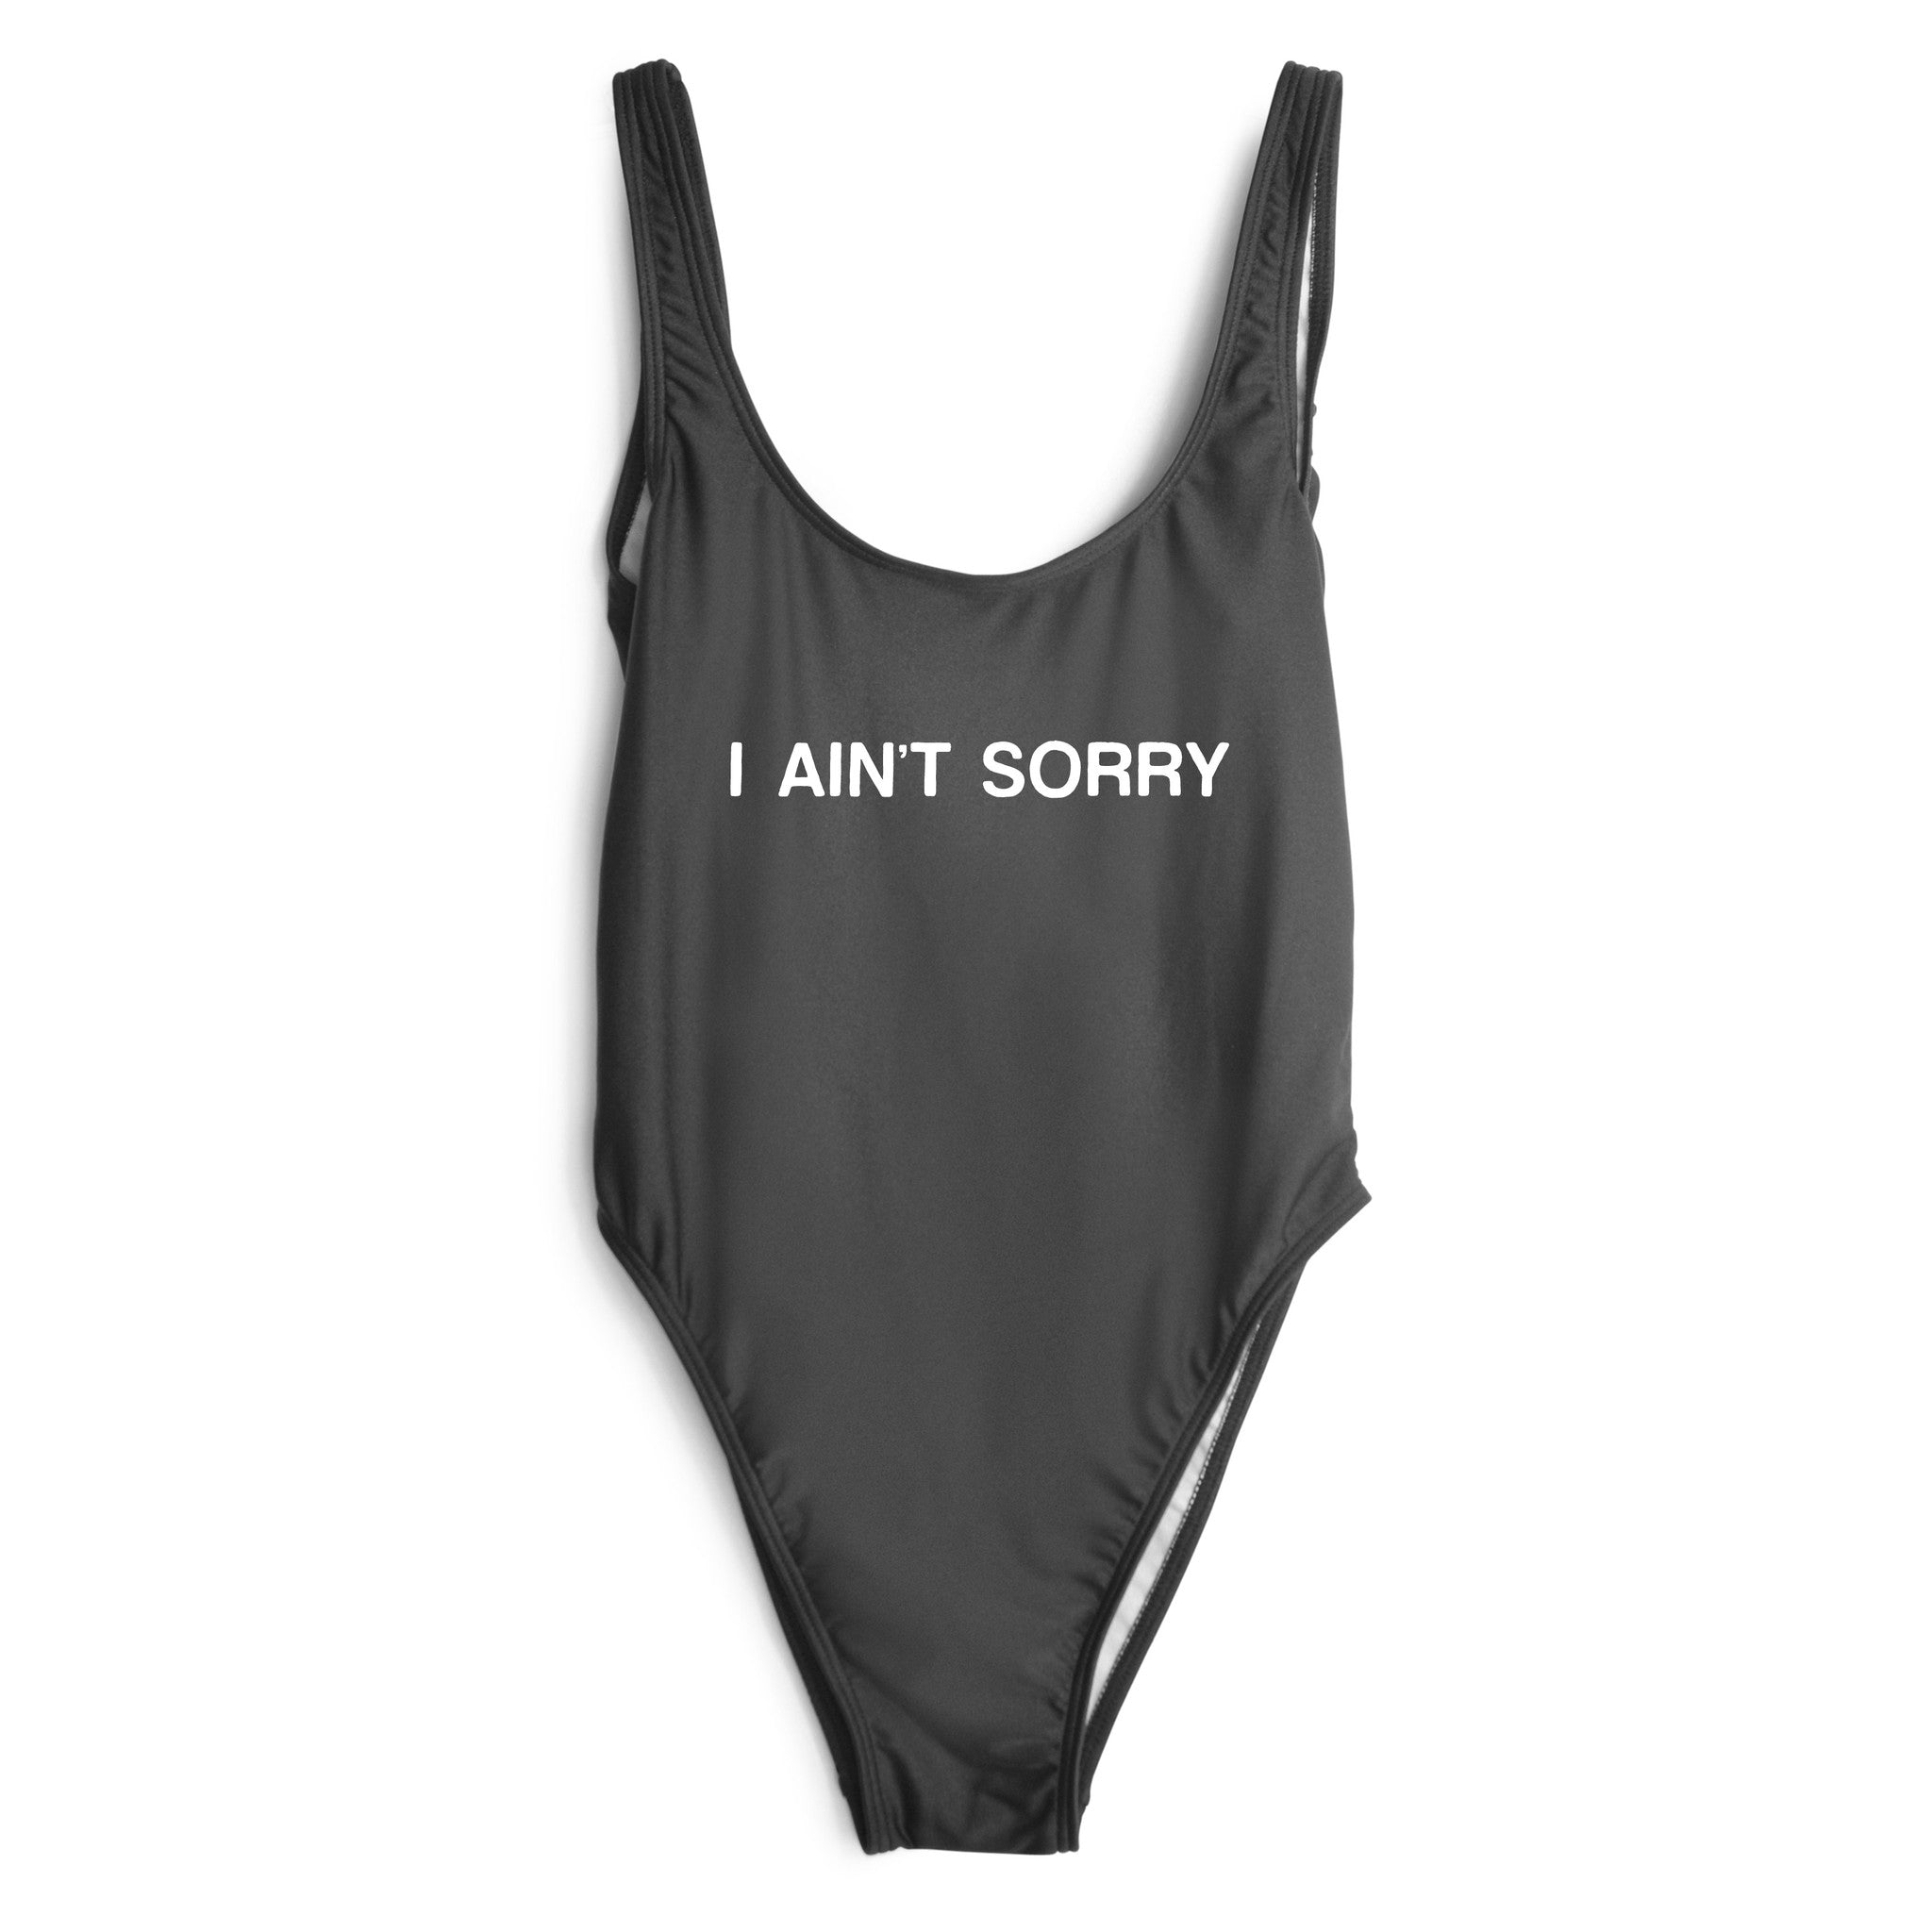 I AIN'T SORRY [SWIMSUIT]